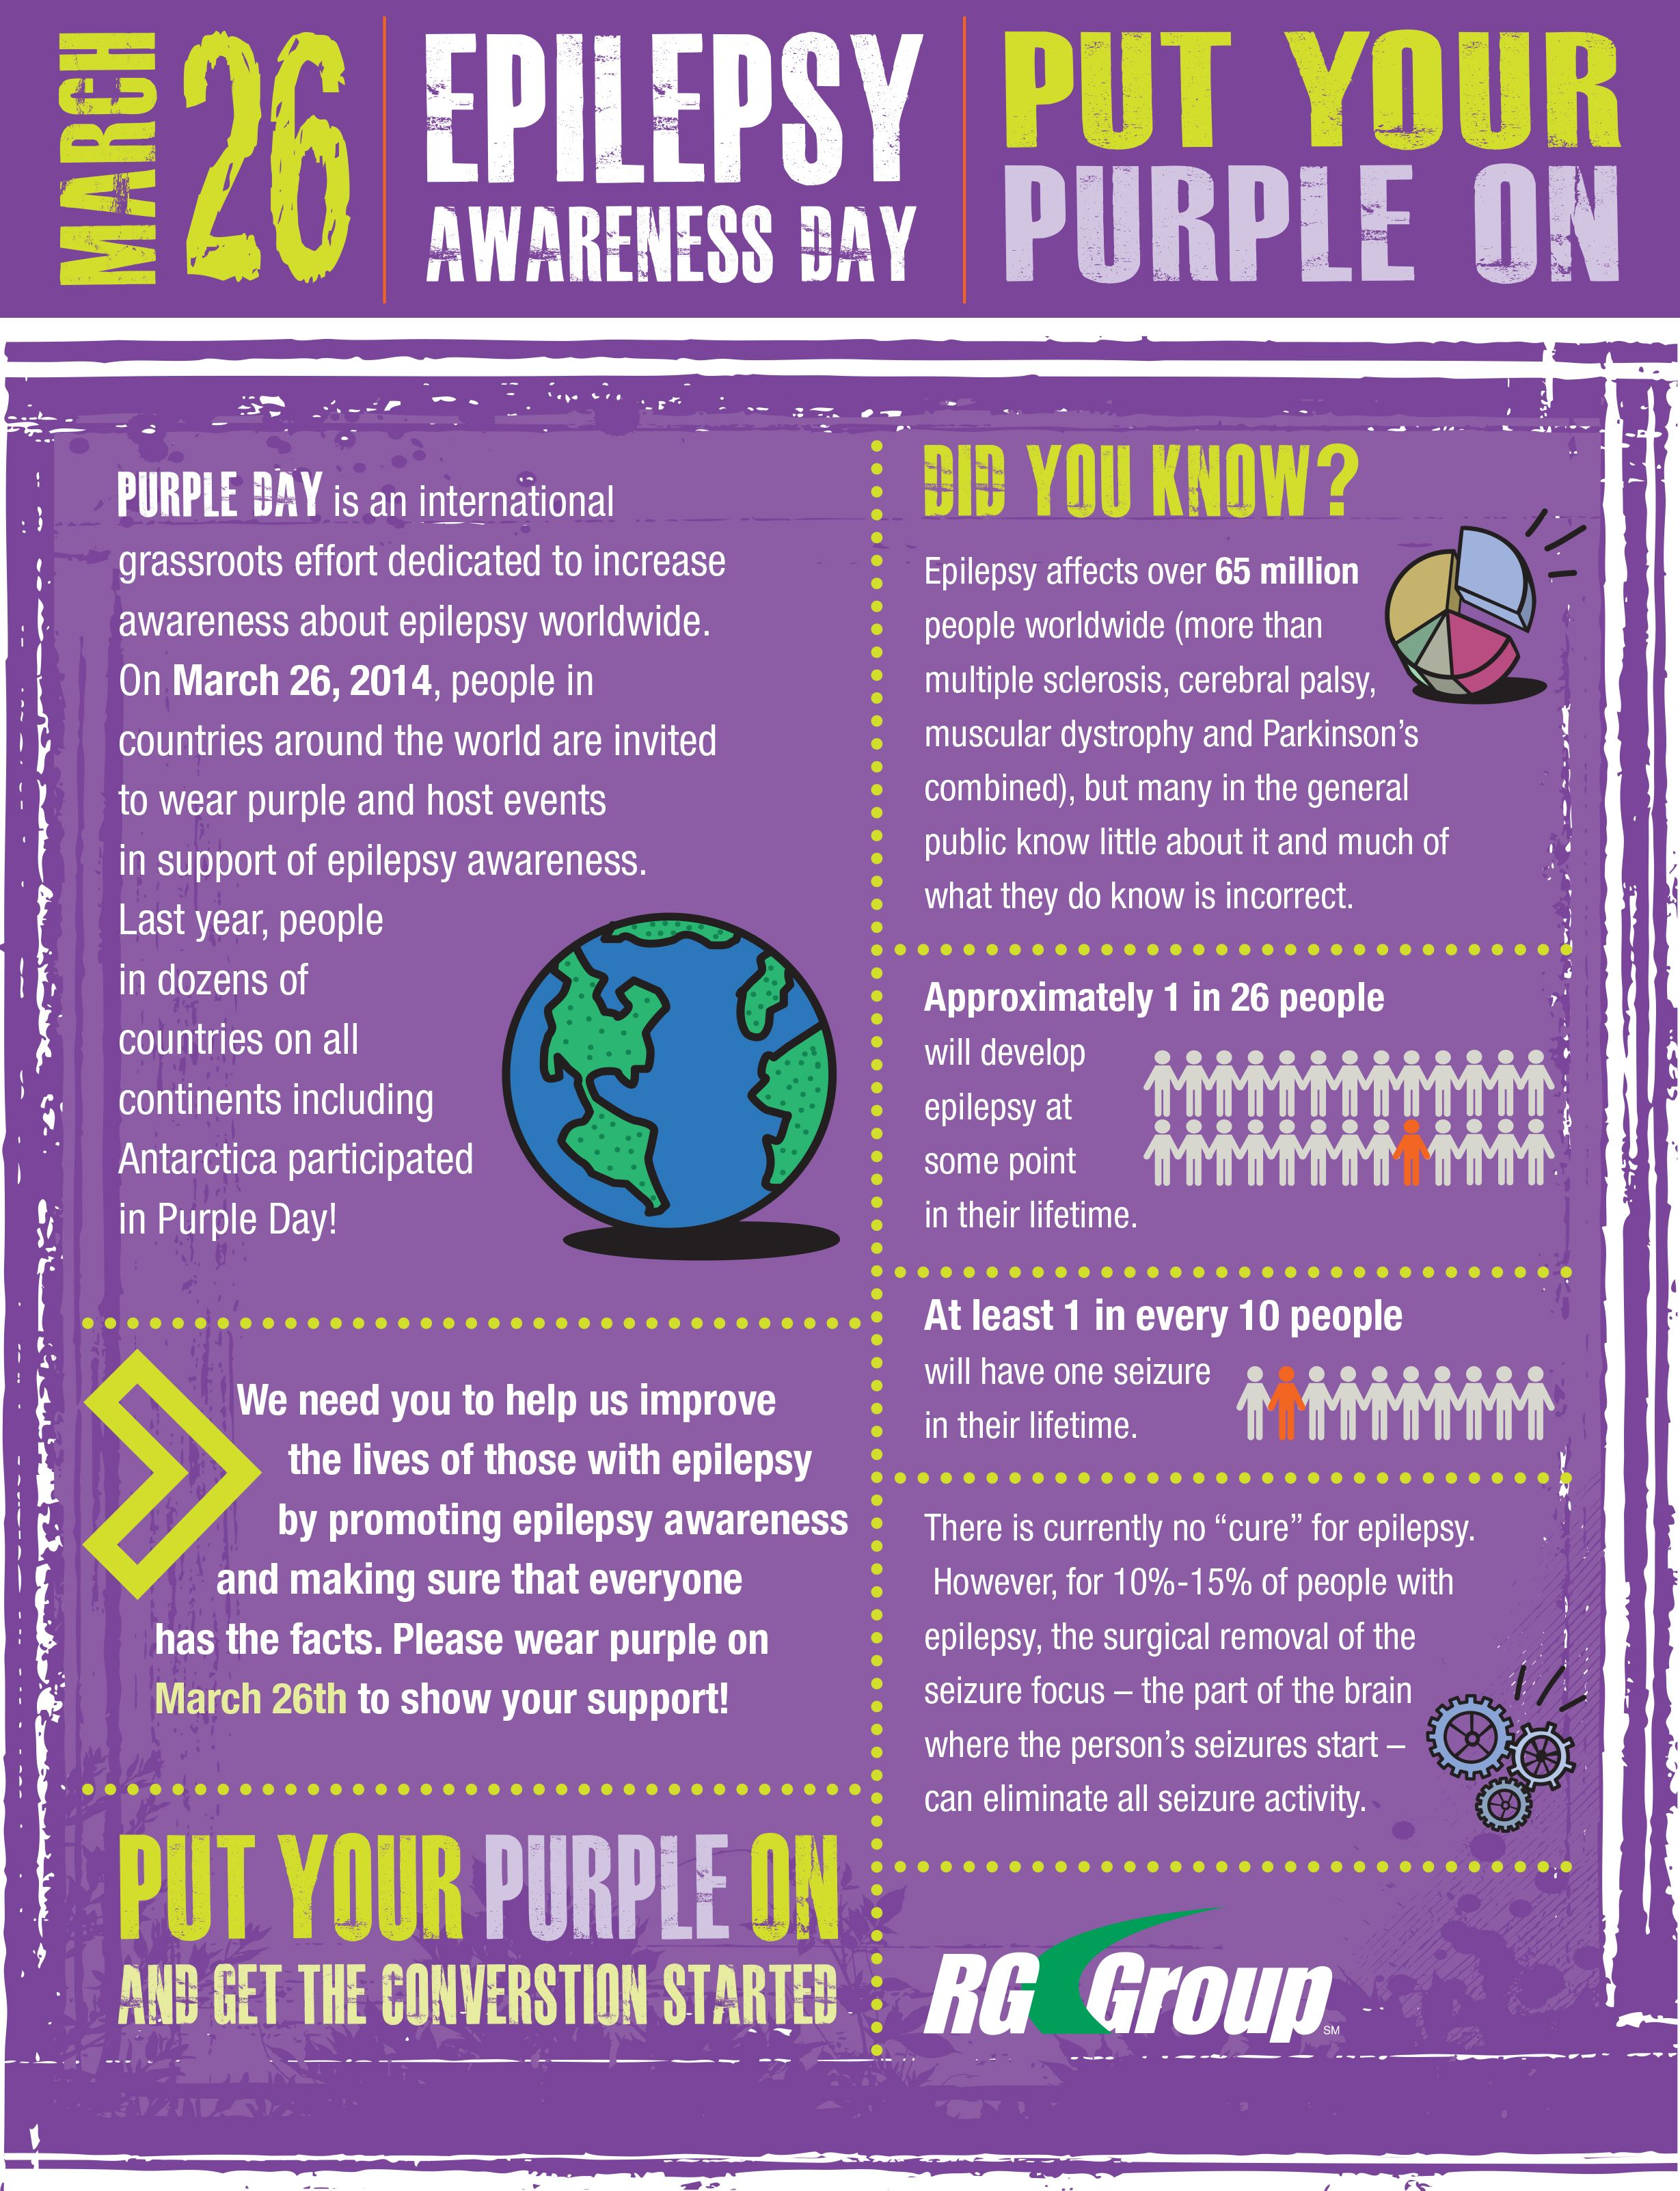 Please support Purple Day for Epilepsy Awareness with us